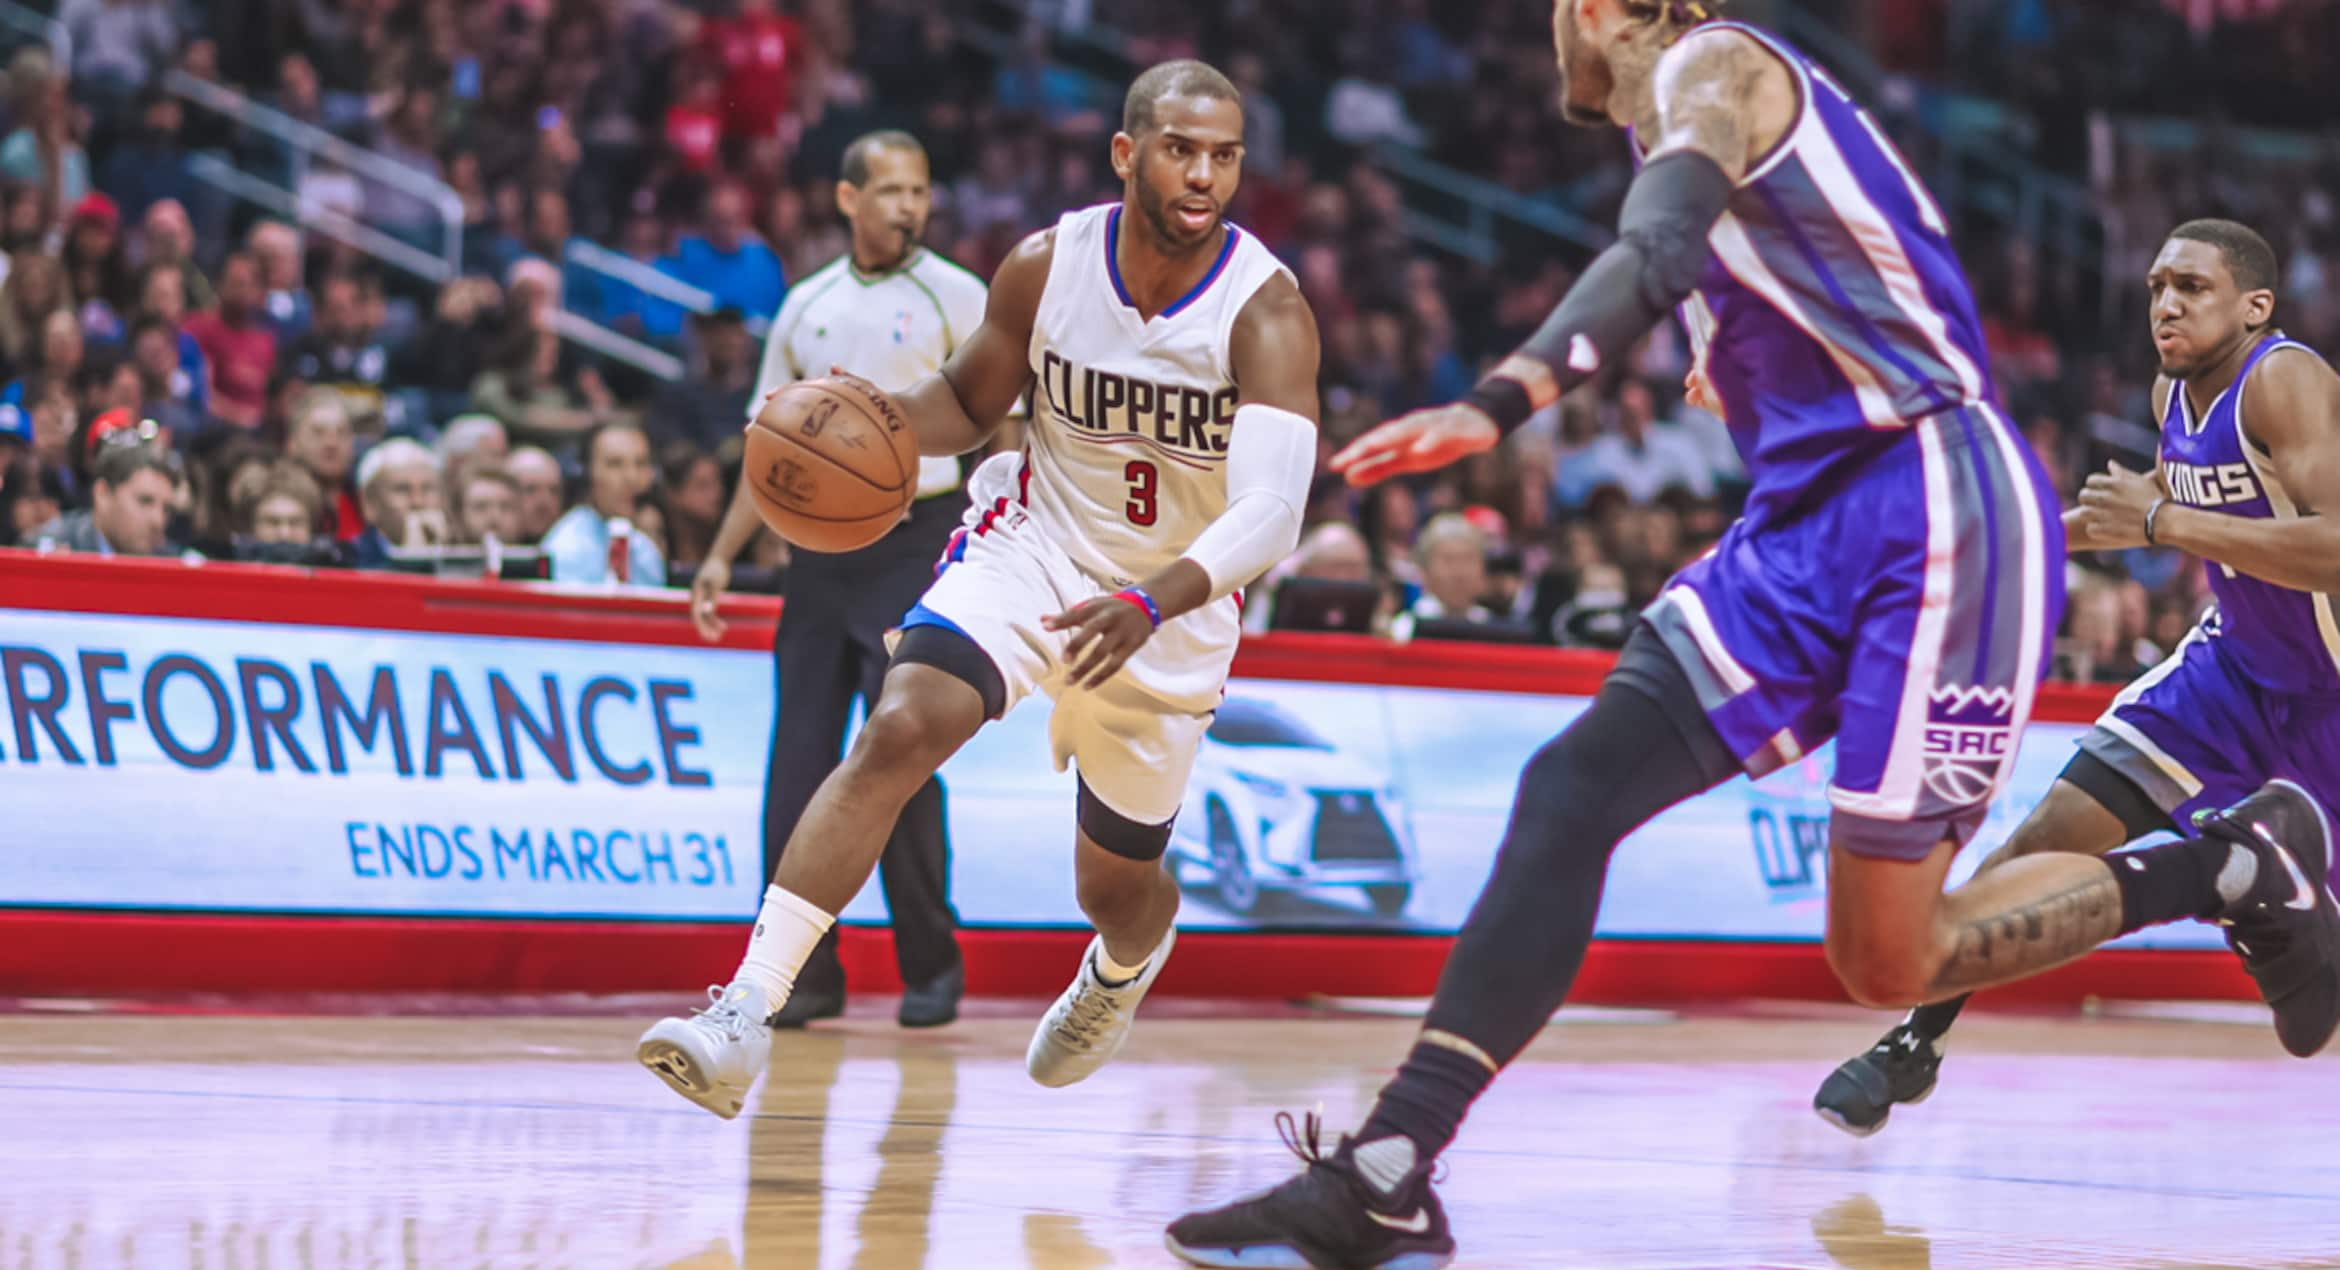 Finally Having A Practice, Clippers Continue To Pursue Consistency